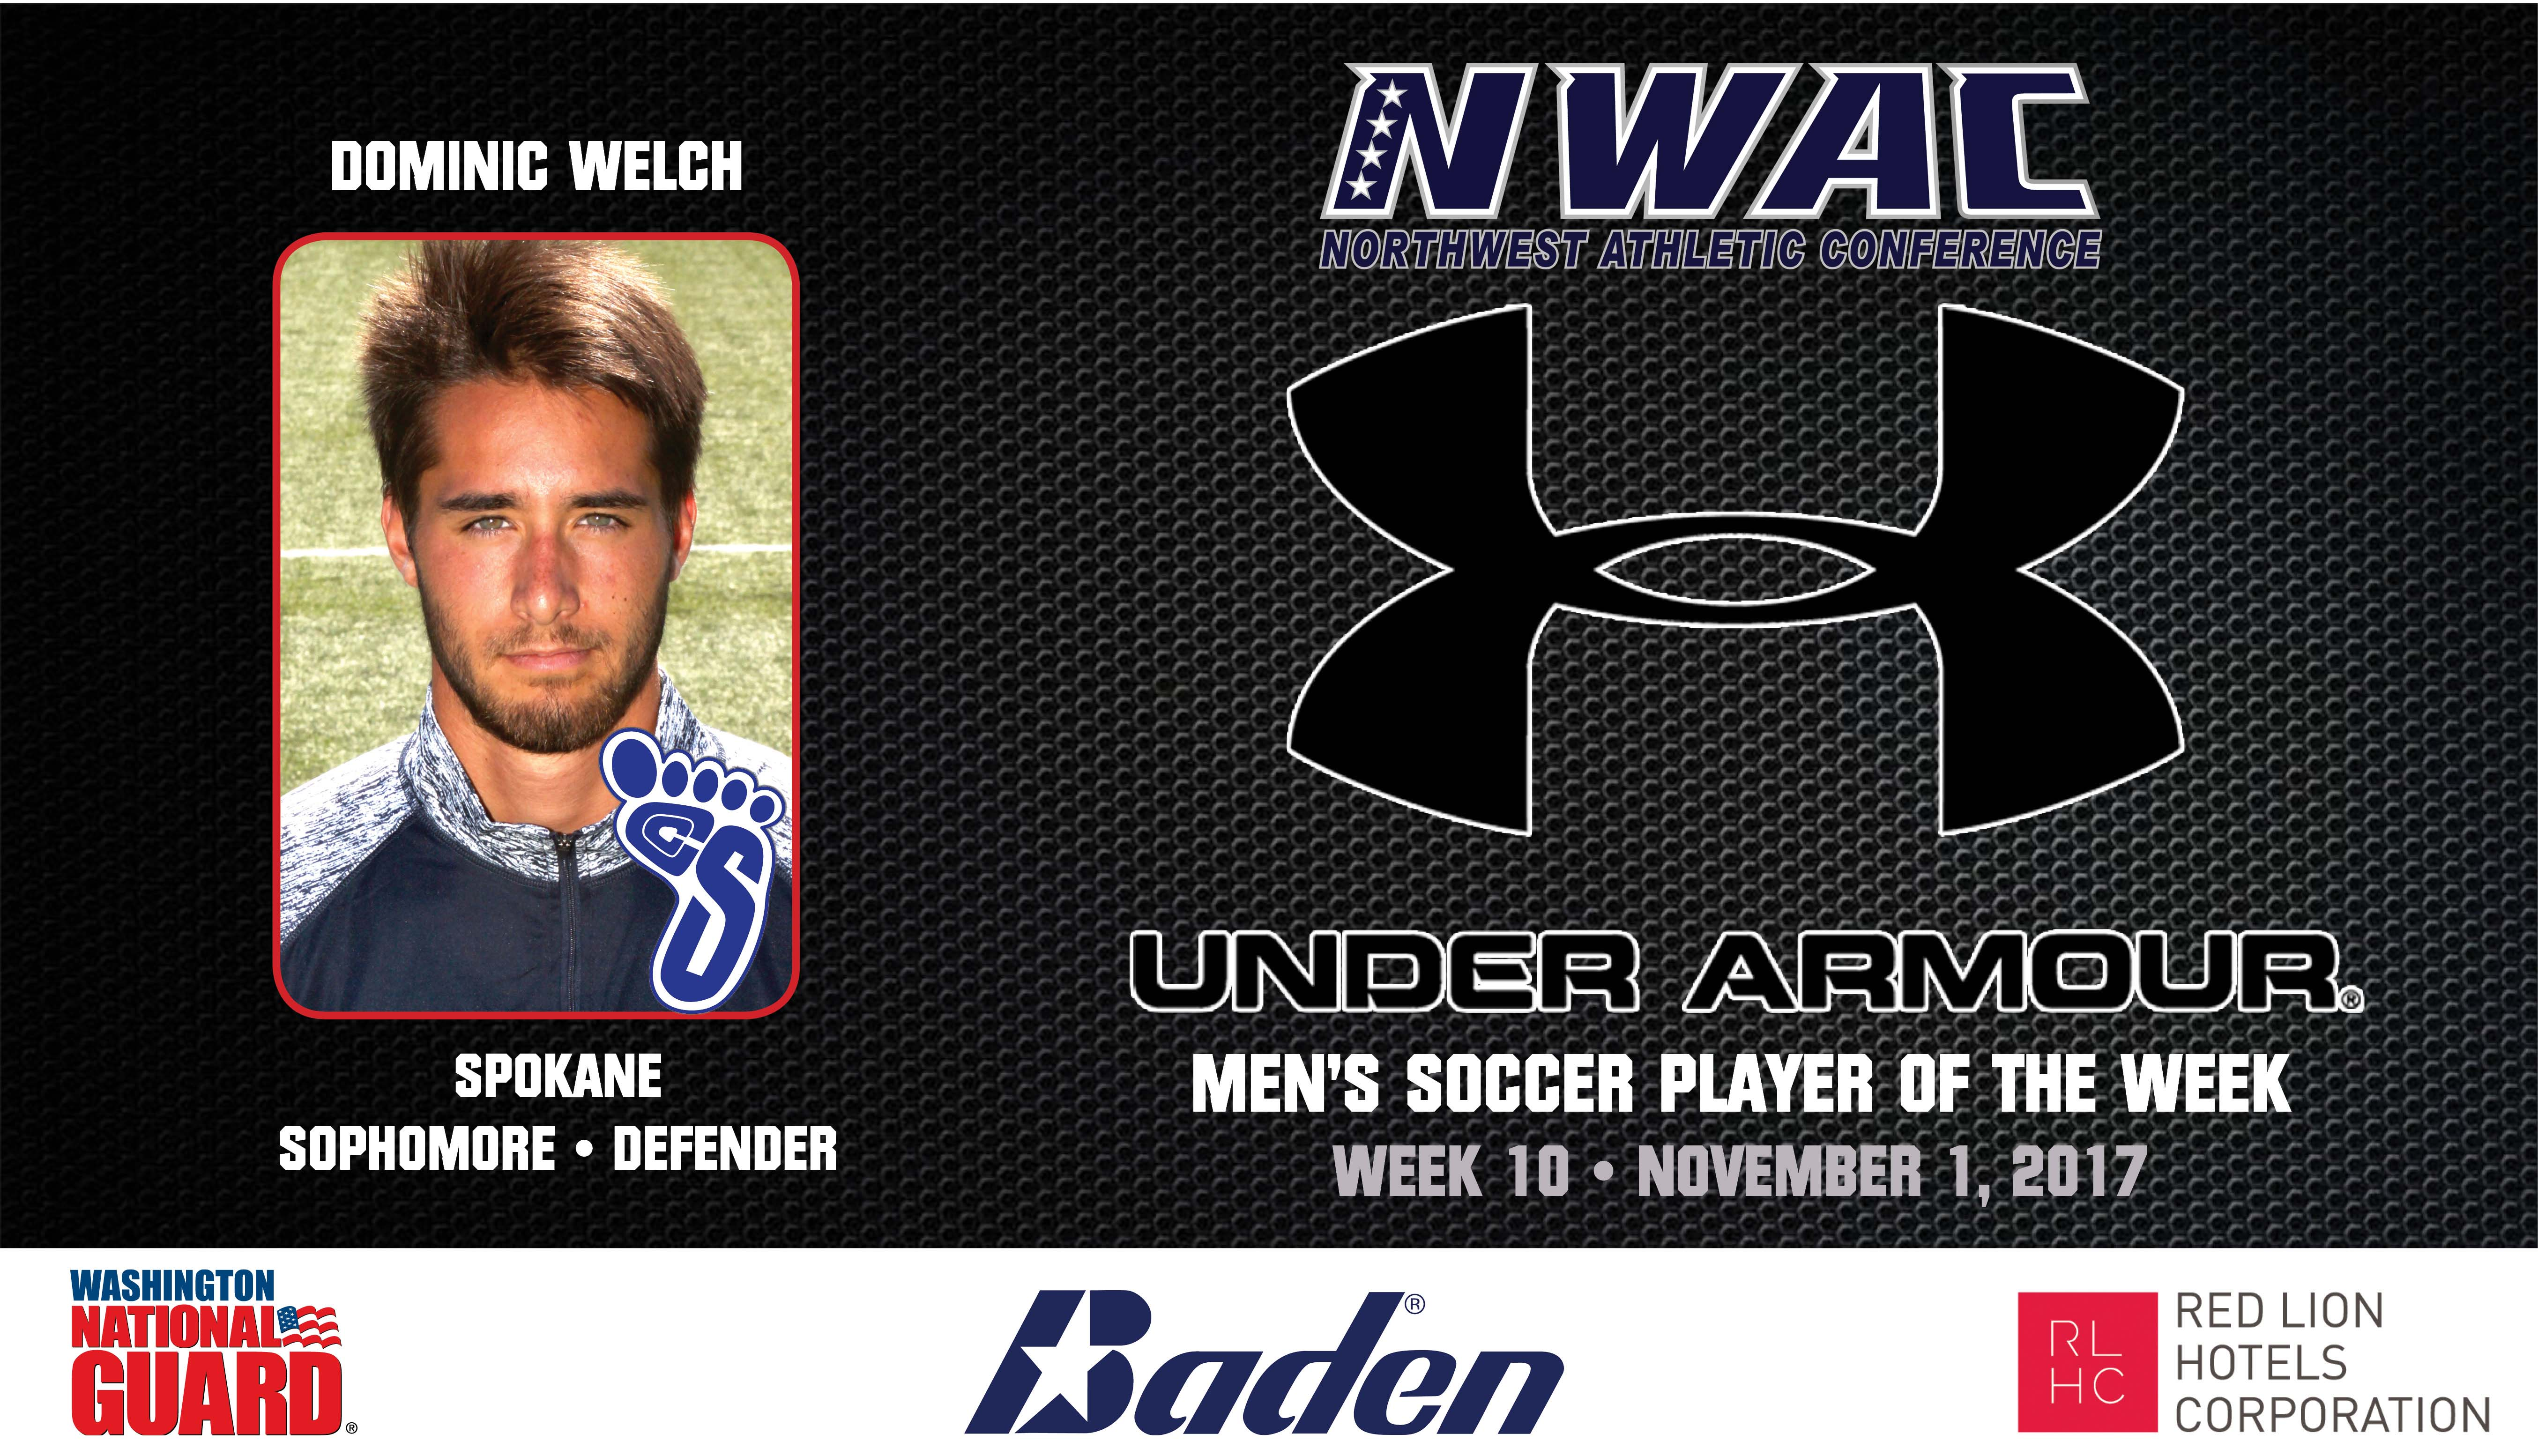 Dominic Welch Armour Player of the Week graphic